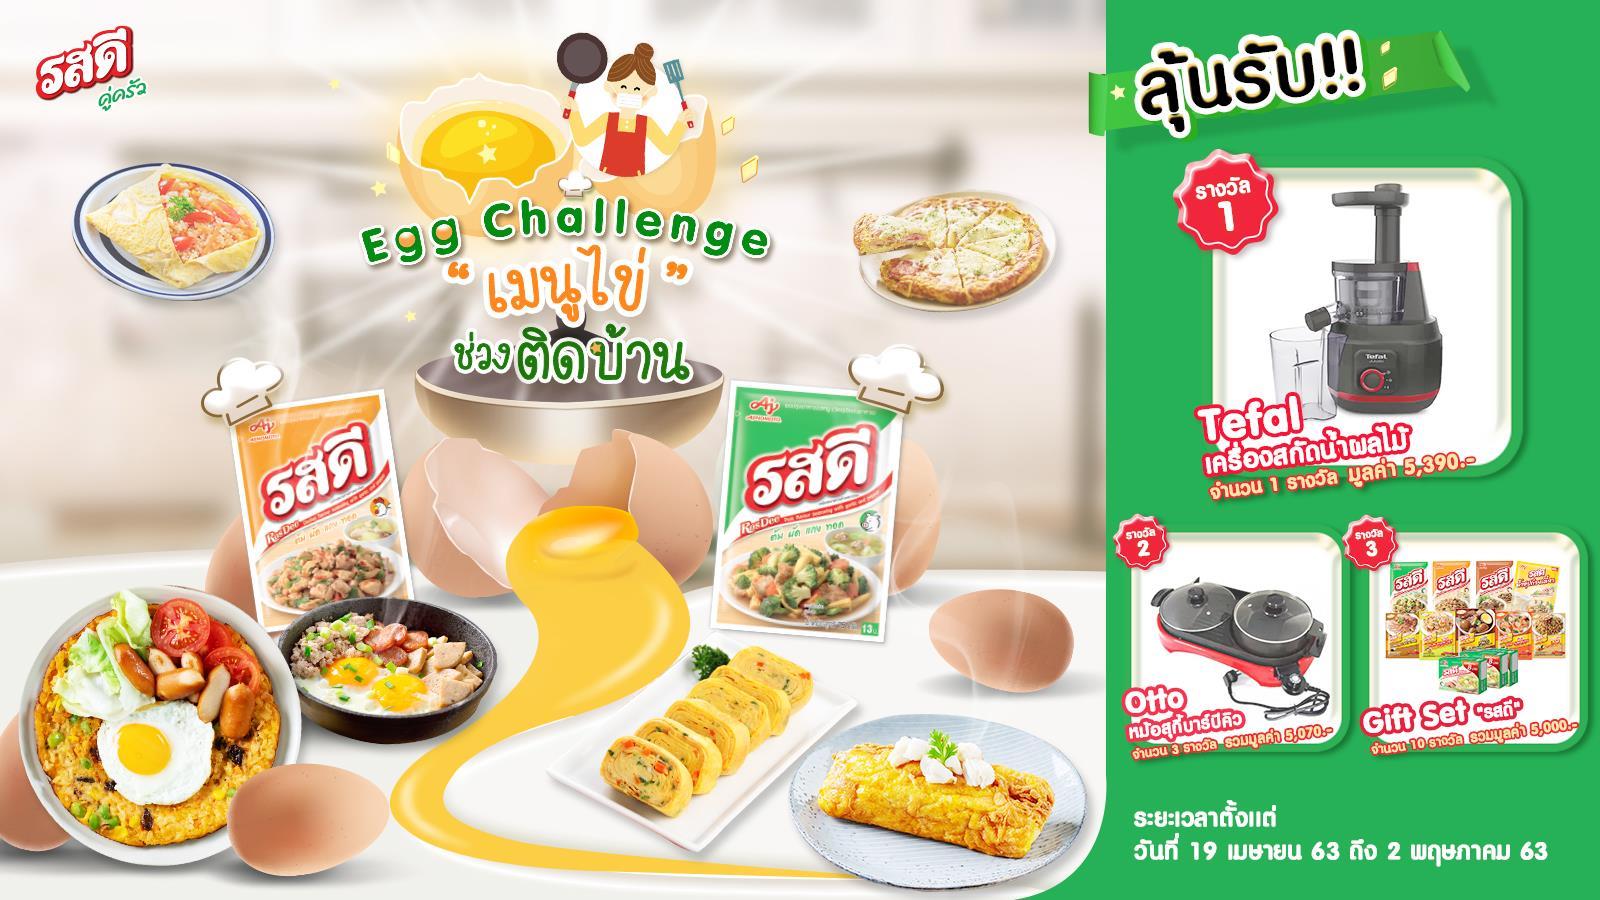 2020.04.16 Banner Egg Challenge Website APPROVED R1